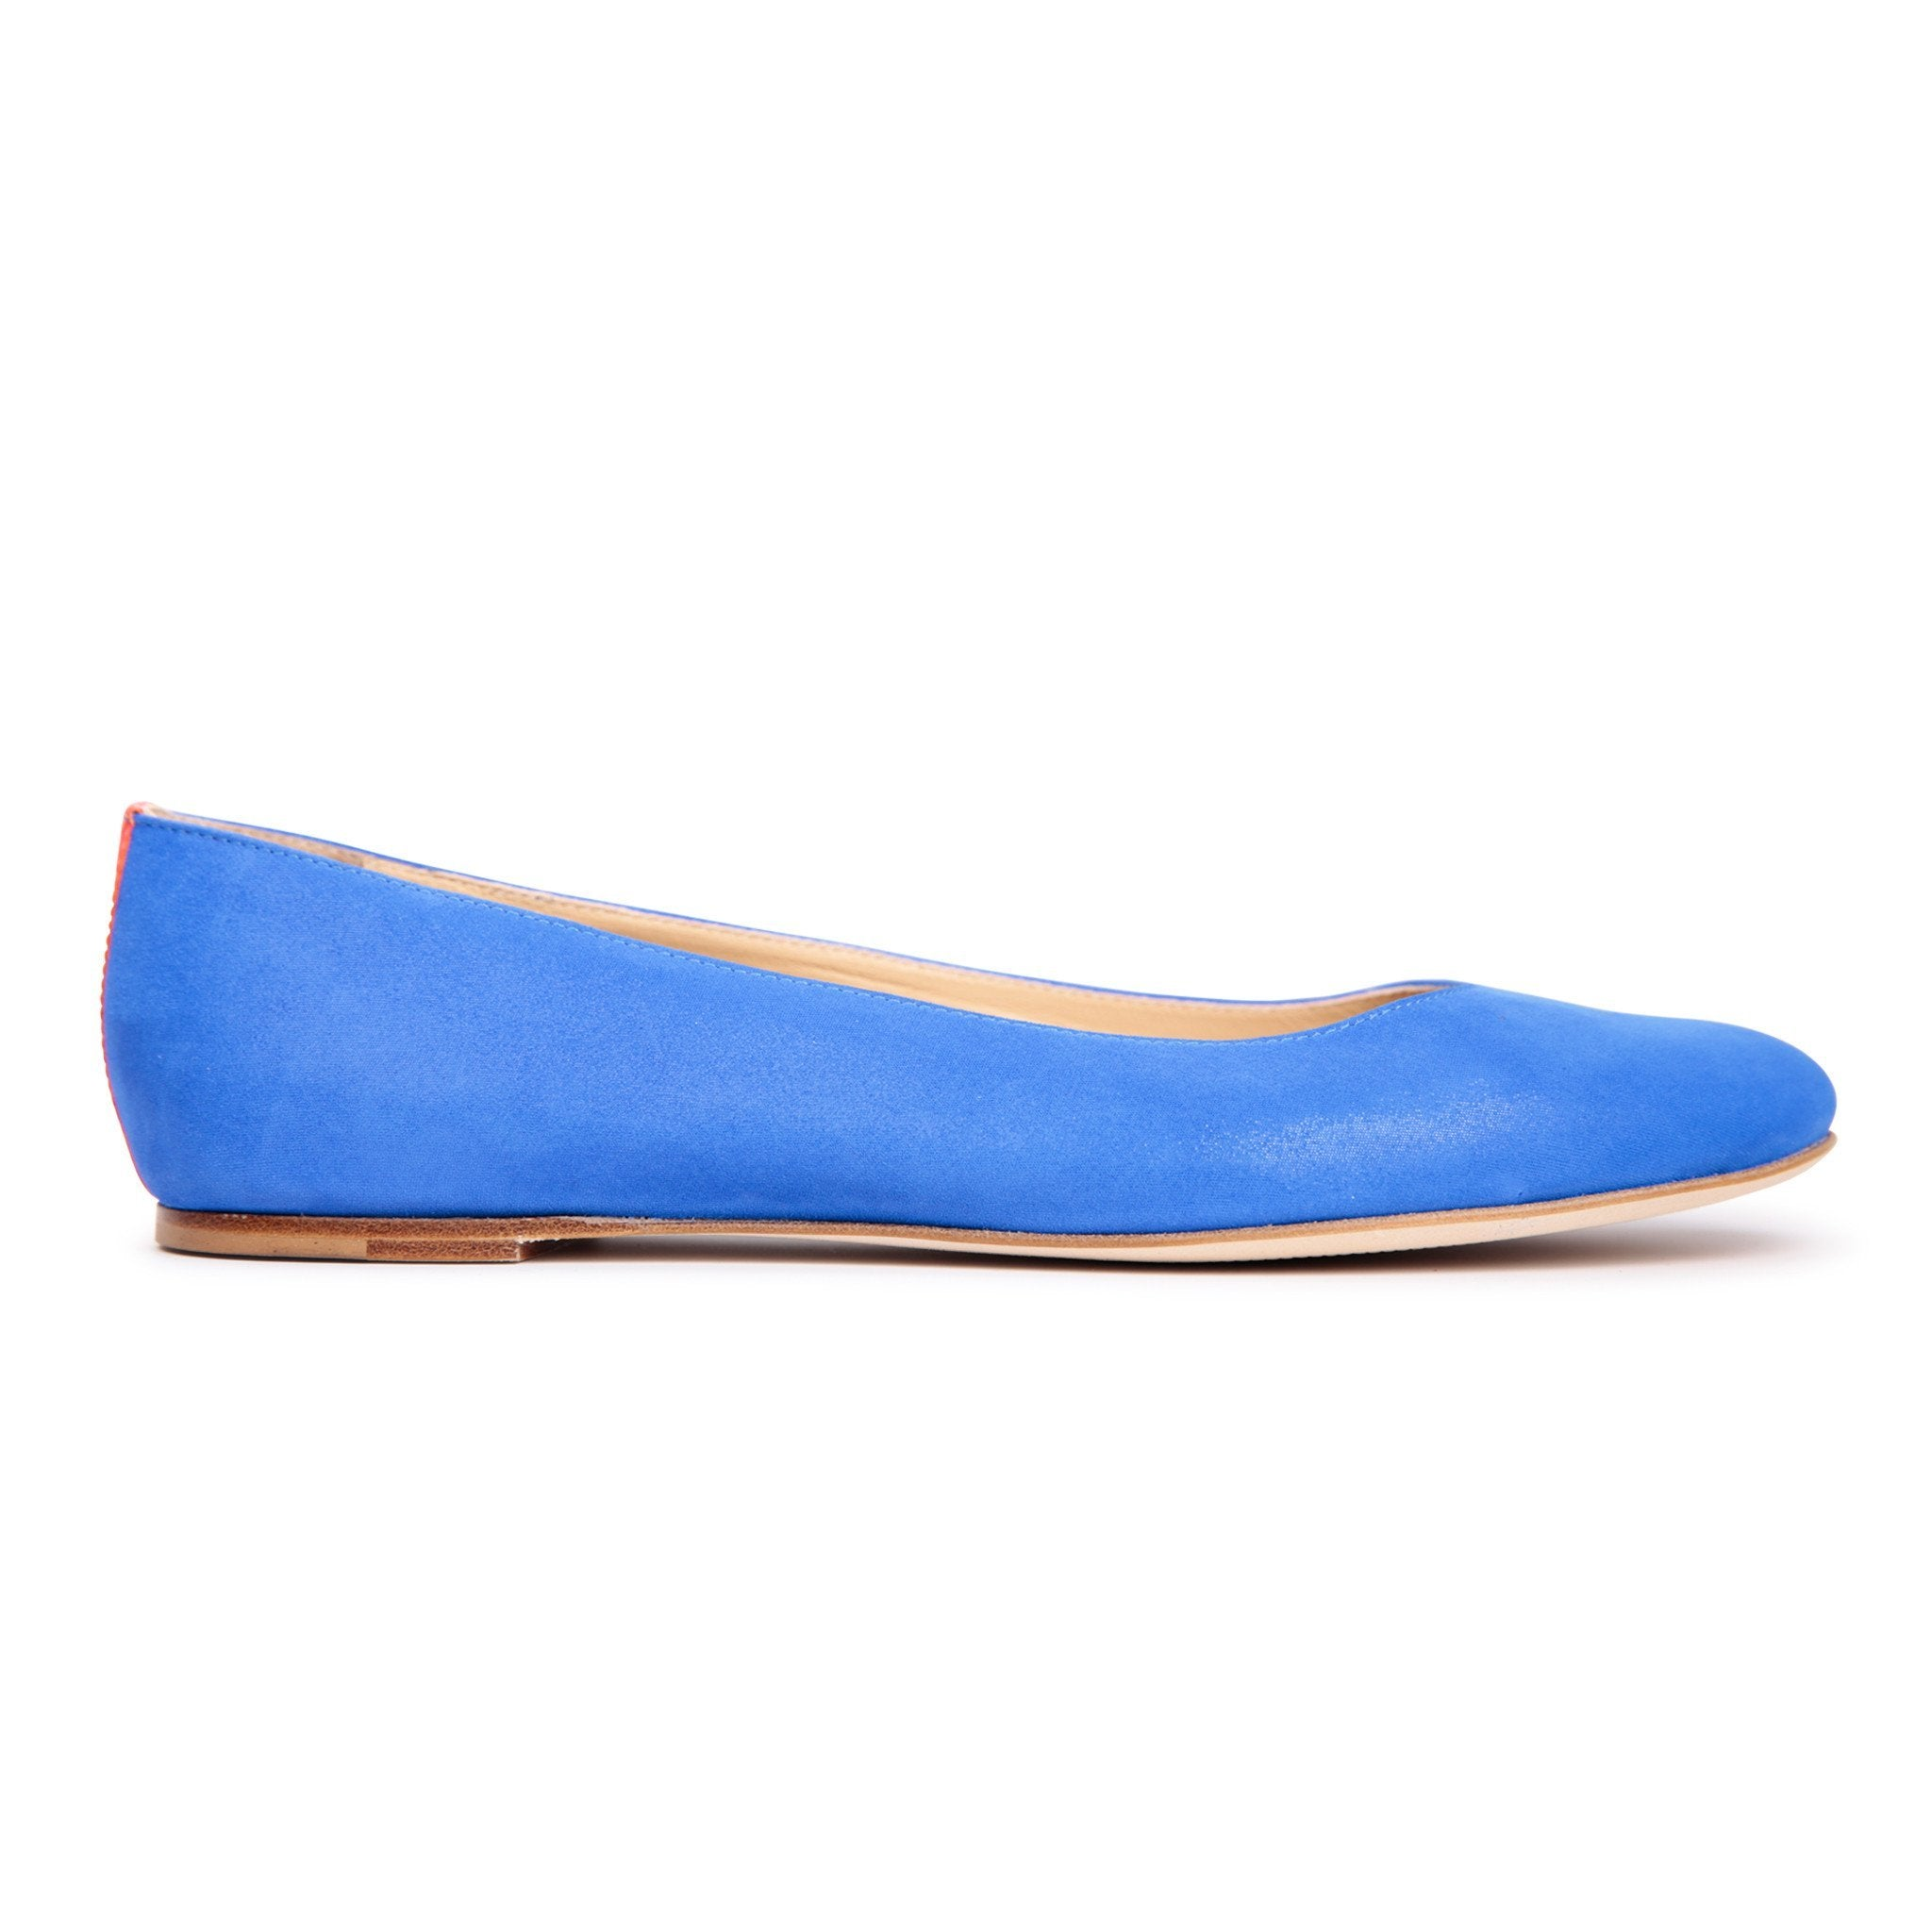 VENEZIA - Hydra Cobalt + Patent Tuscan Sunset, VIAJIYU - Women's Hand Made Sustainable Luxury Shoes. Made in Italy. Made to Order.